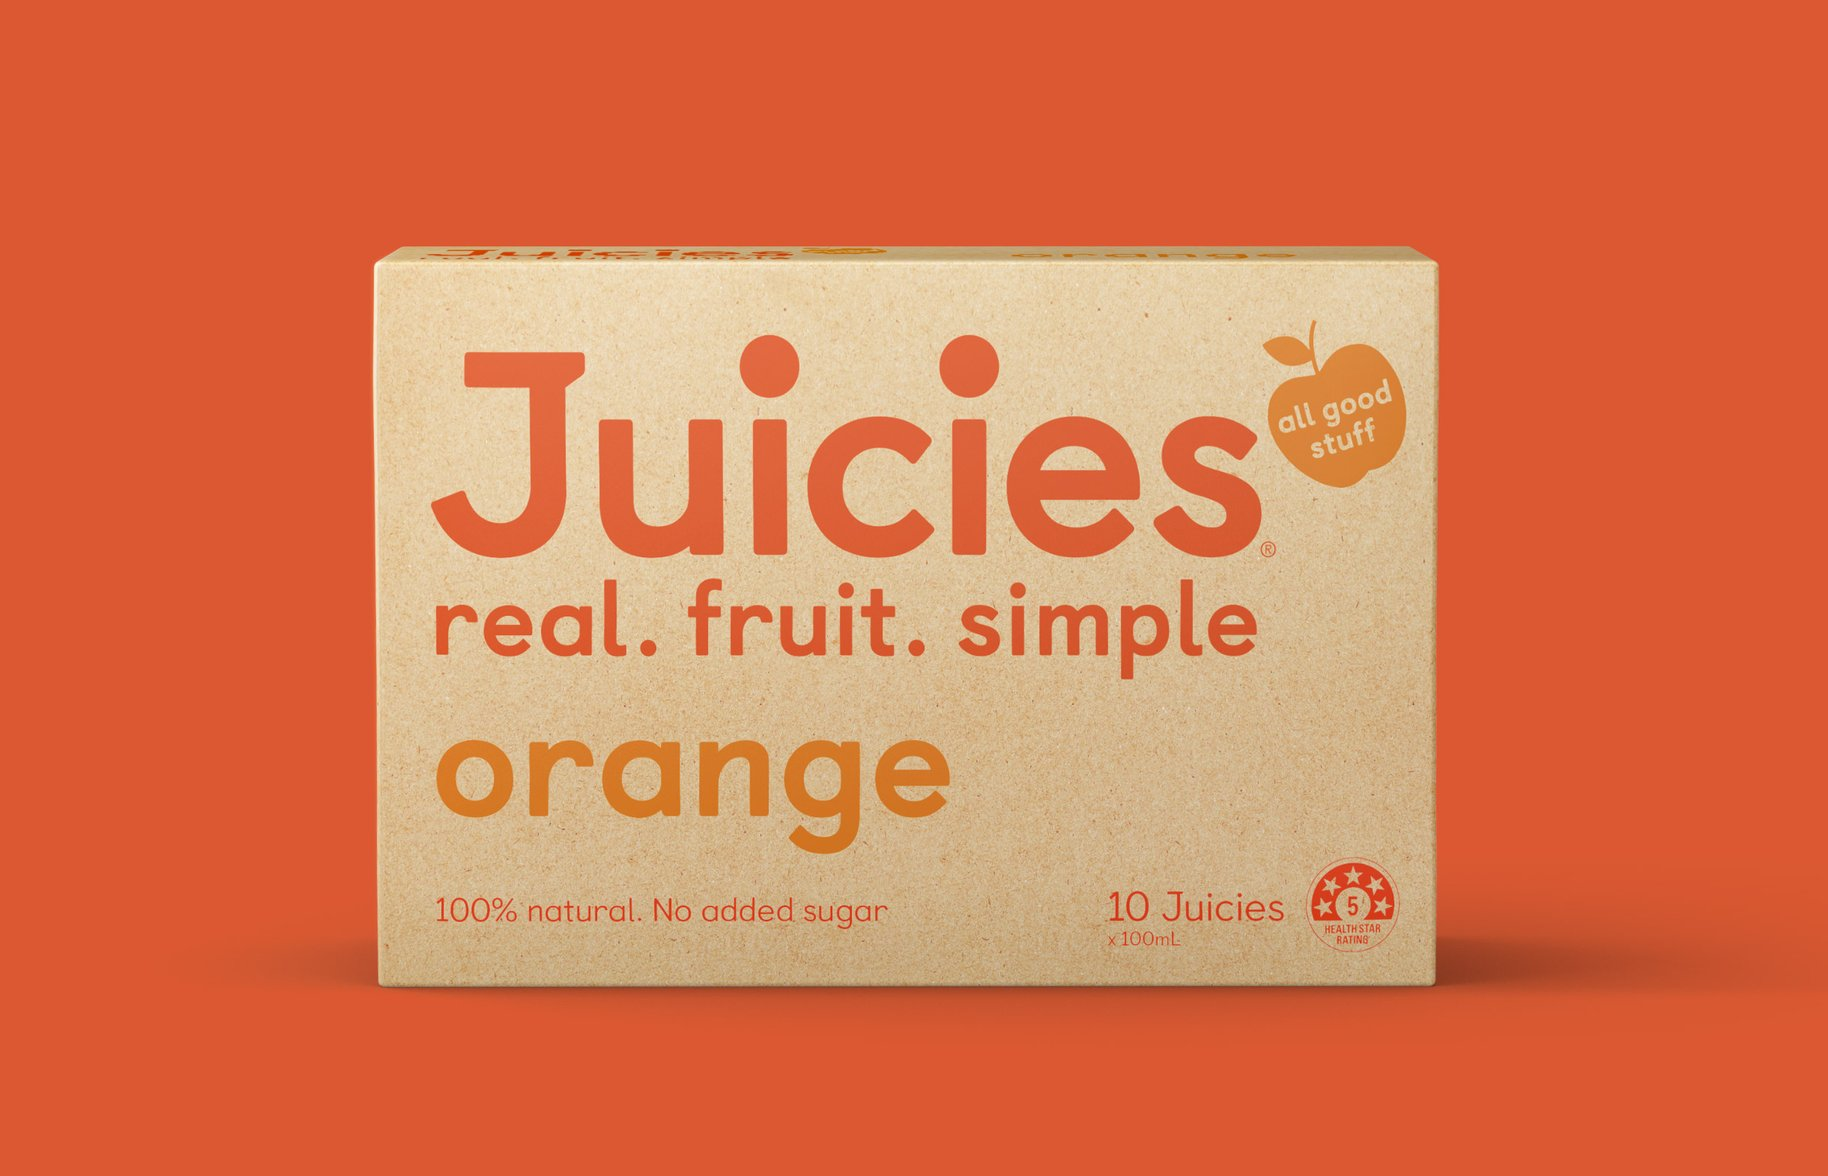 Juicies Orange Box